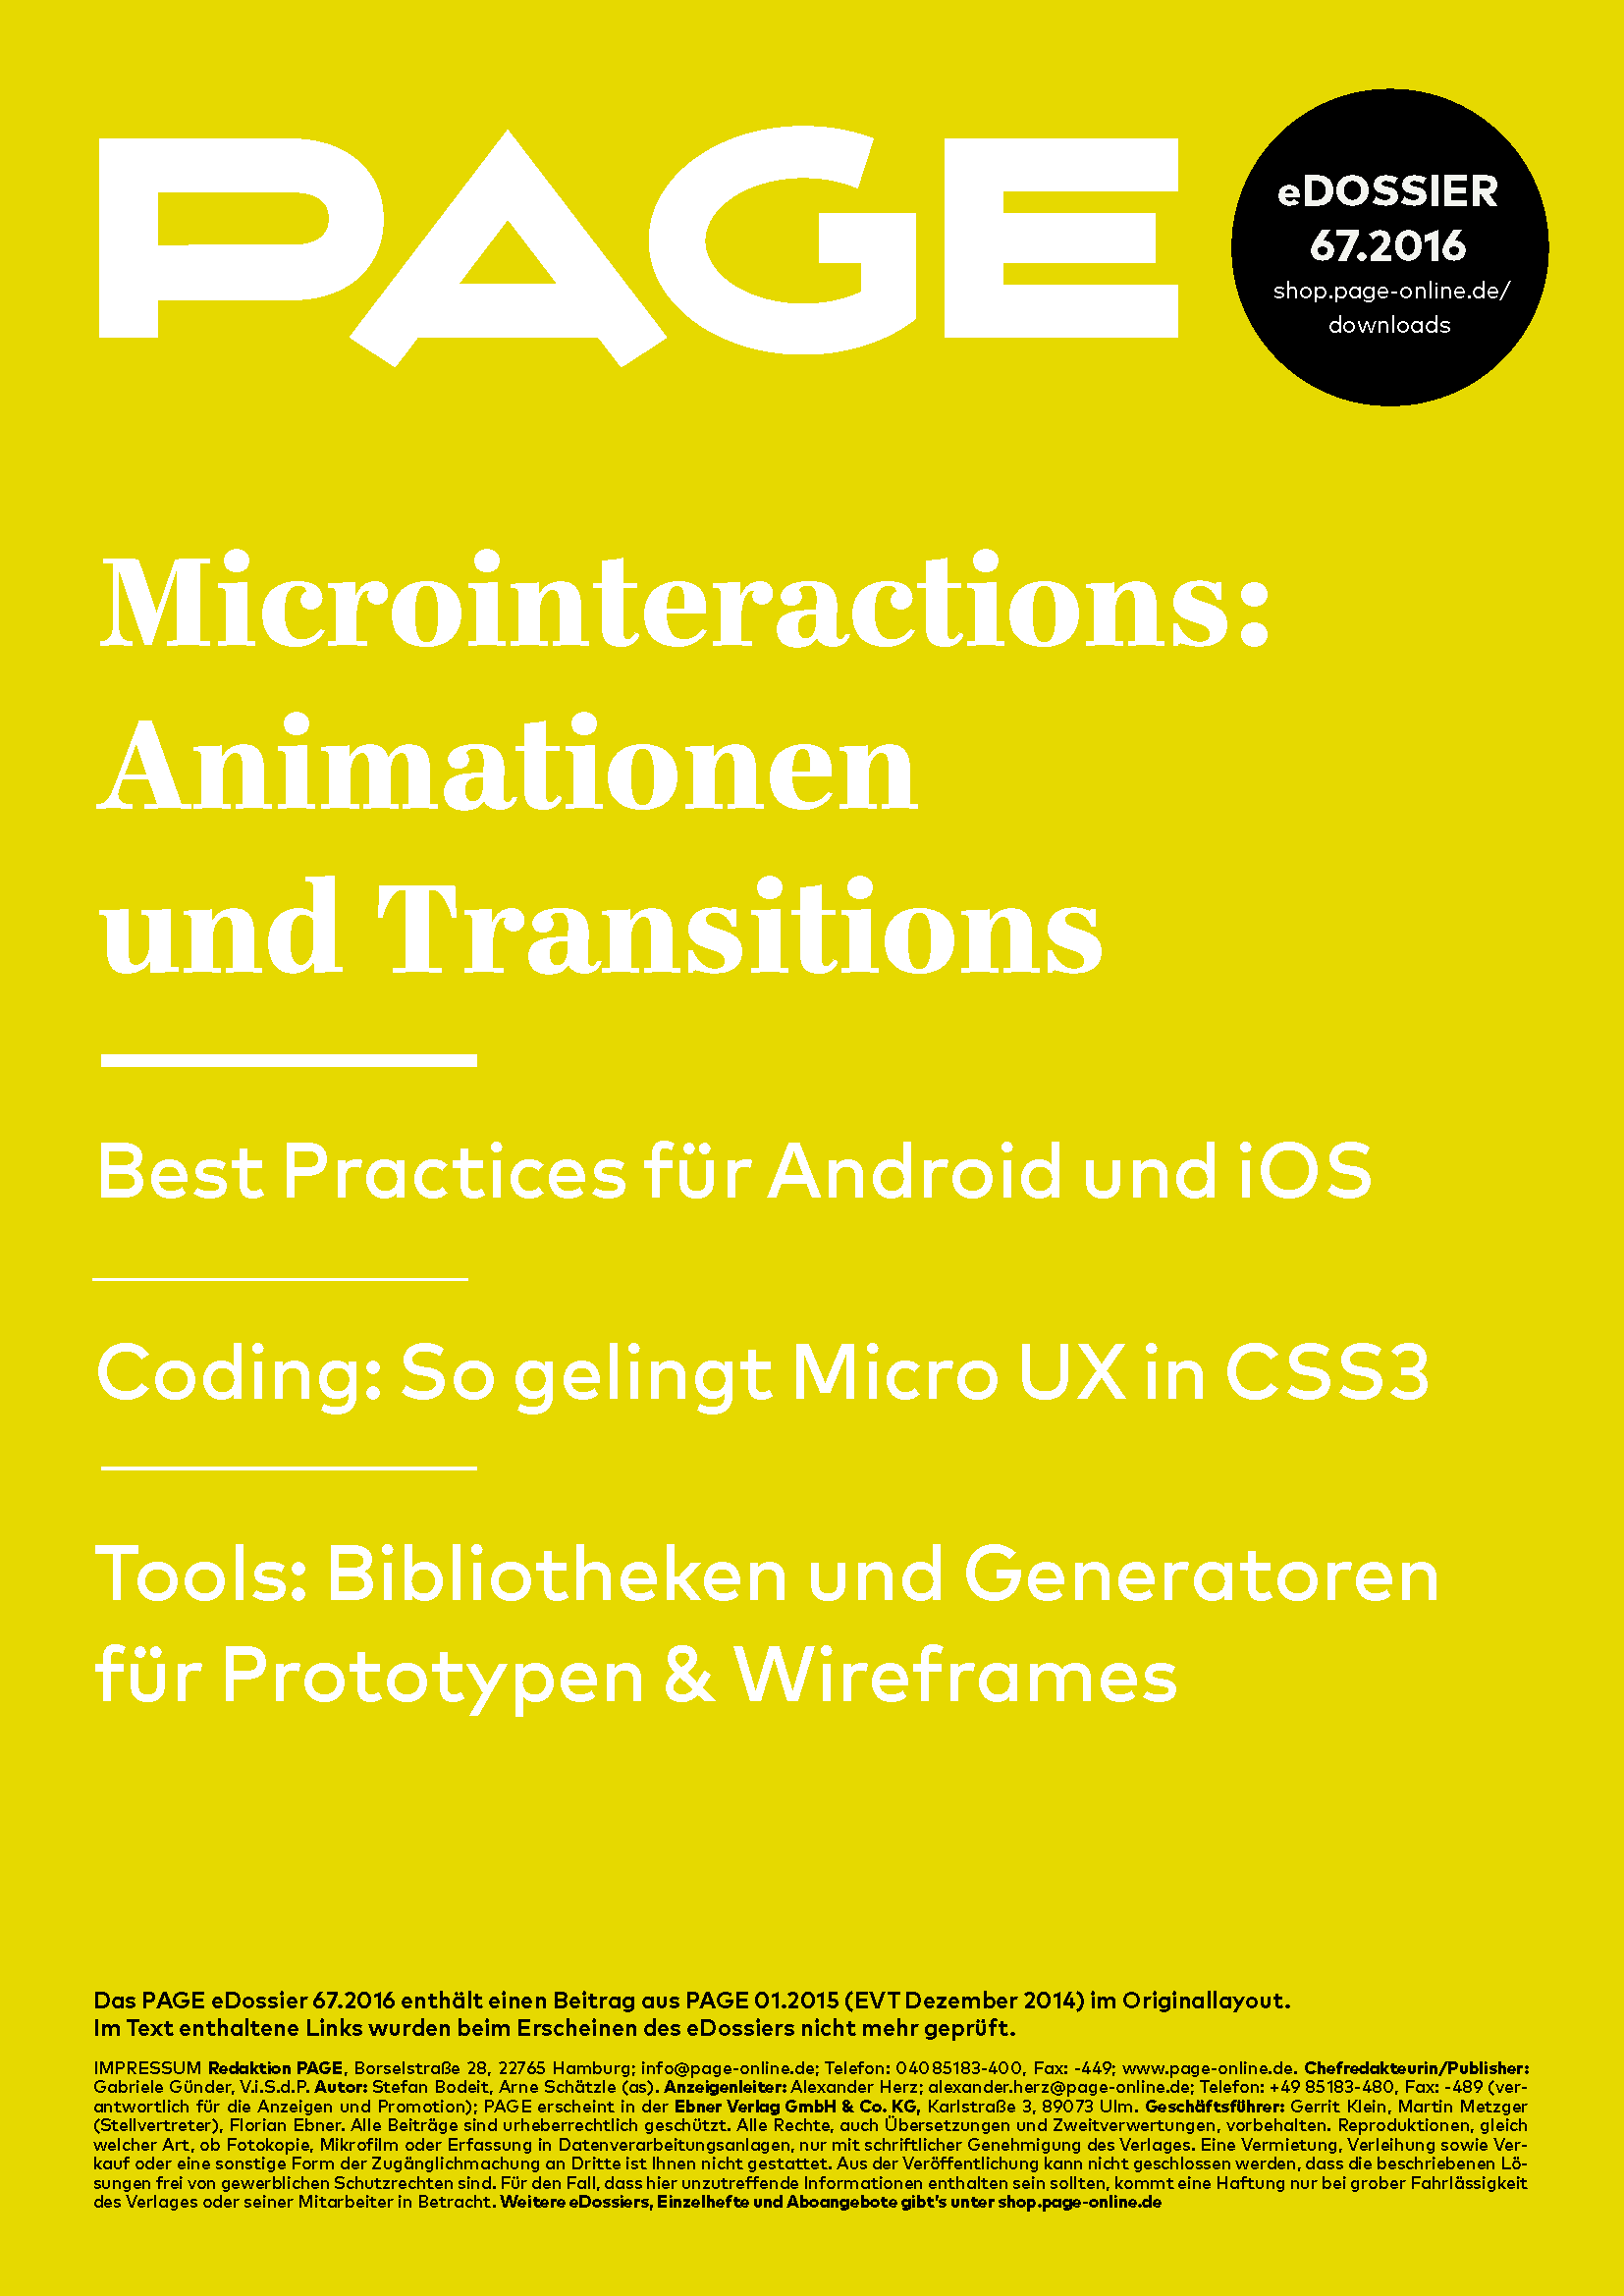 Microinteractions, Transitions, Animationen, iPhone, Android-Programmierung, iOS, Screendesign, Website-Prototyping